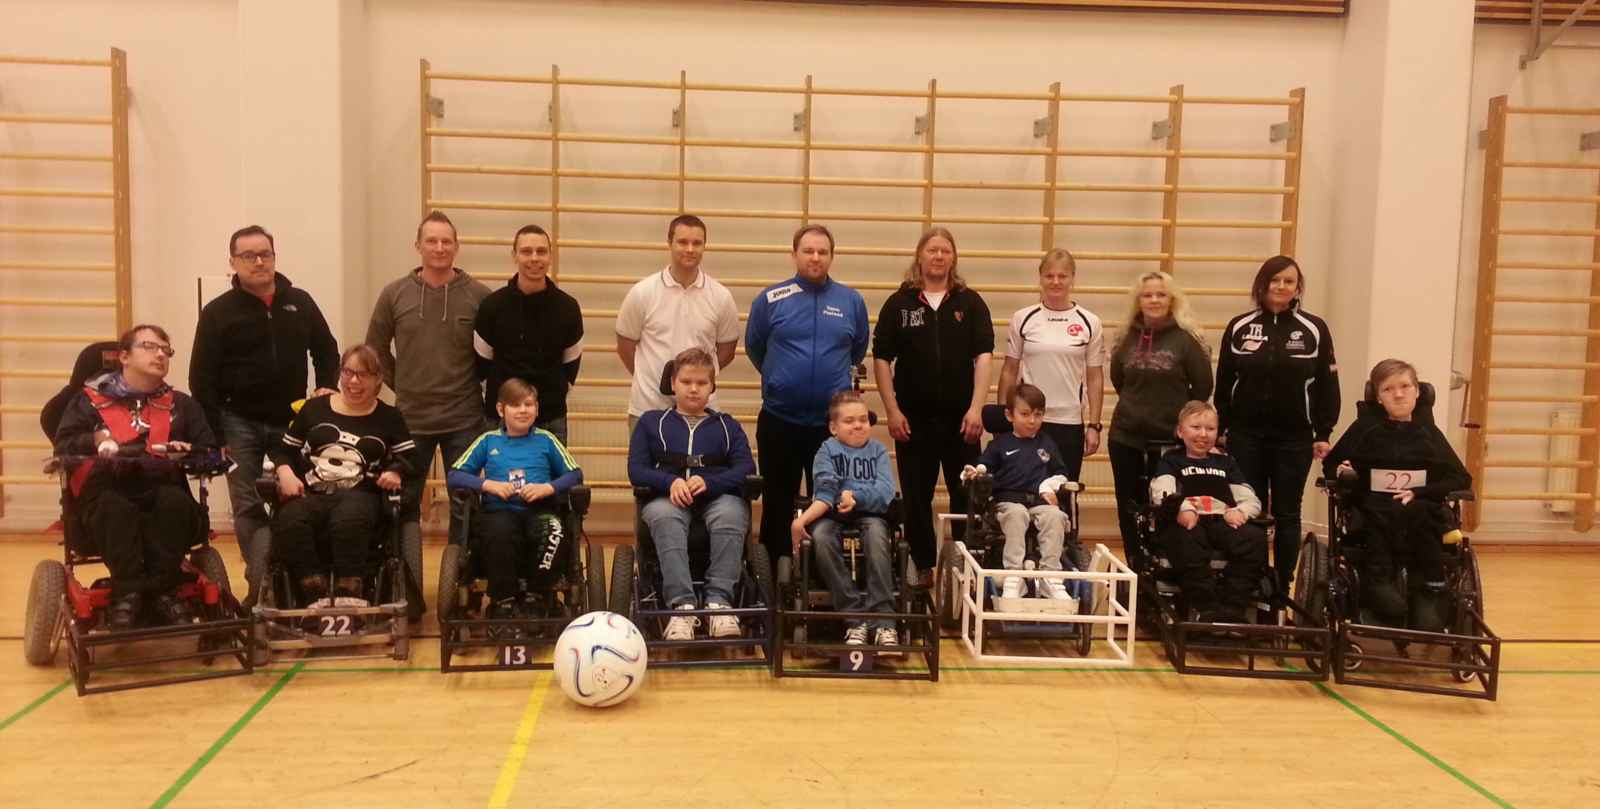 EPFA deliver new coaching course to Finnish and Austrian coaches